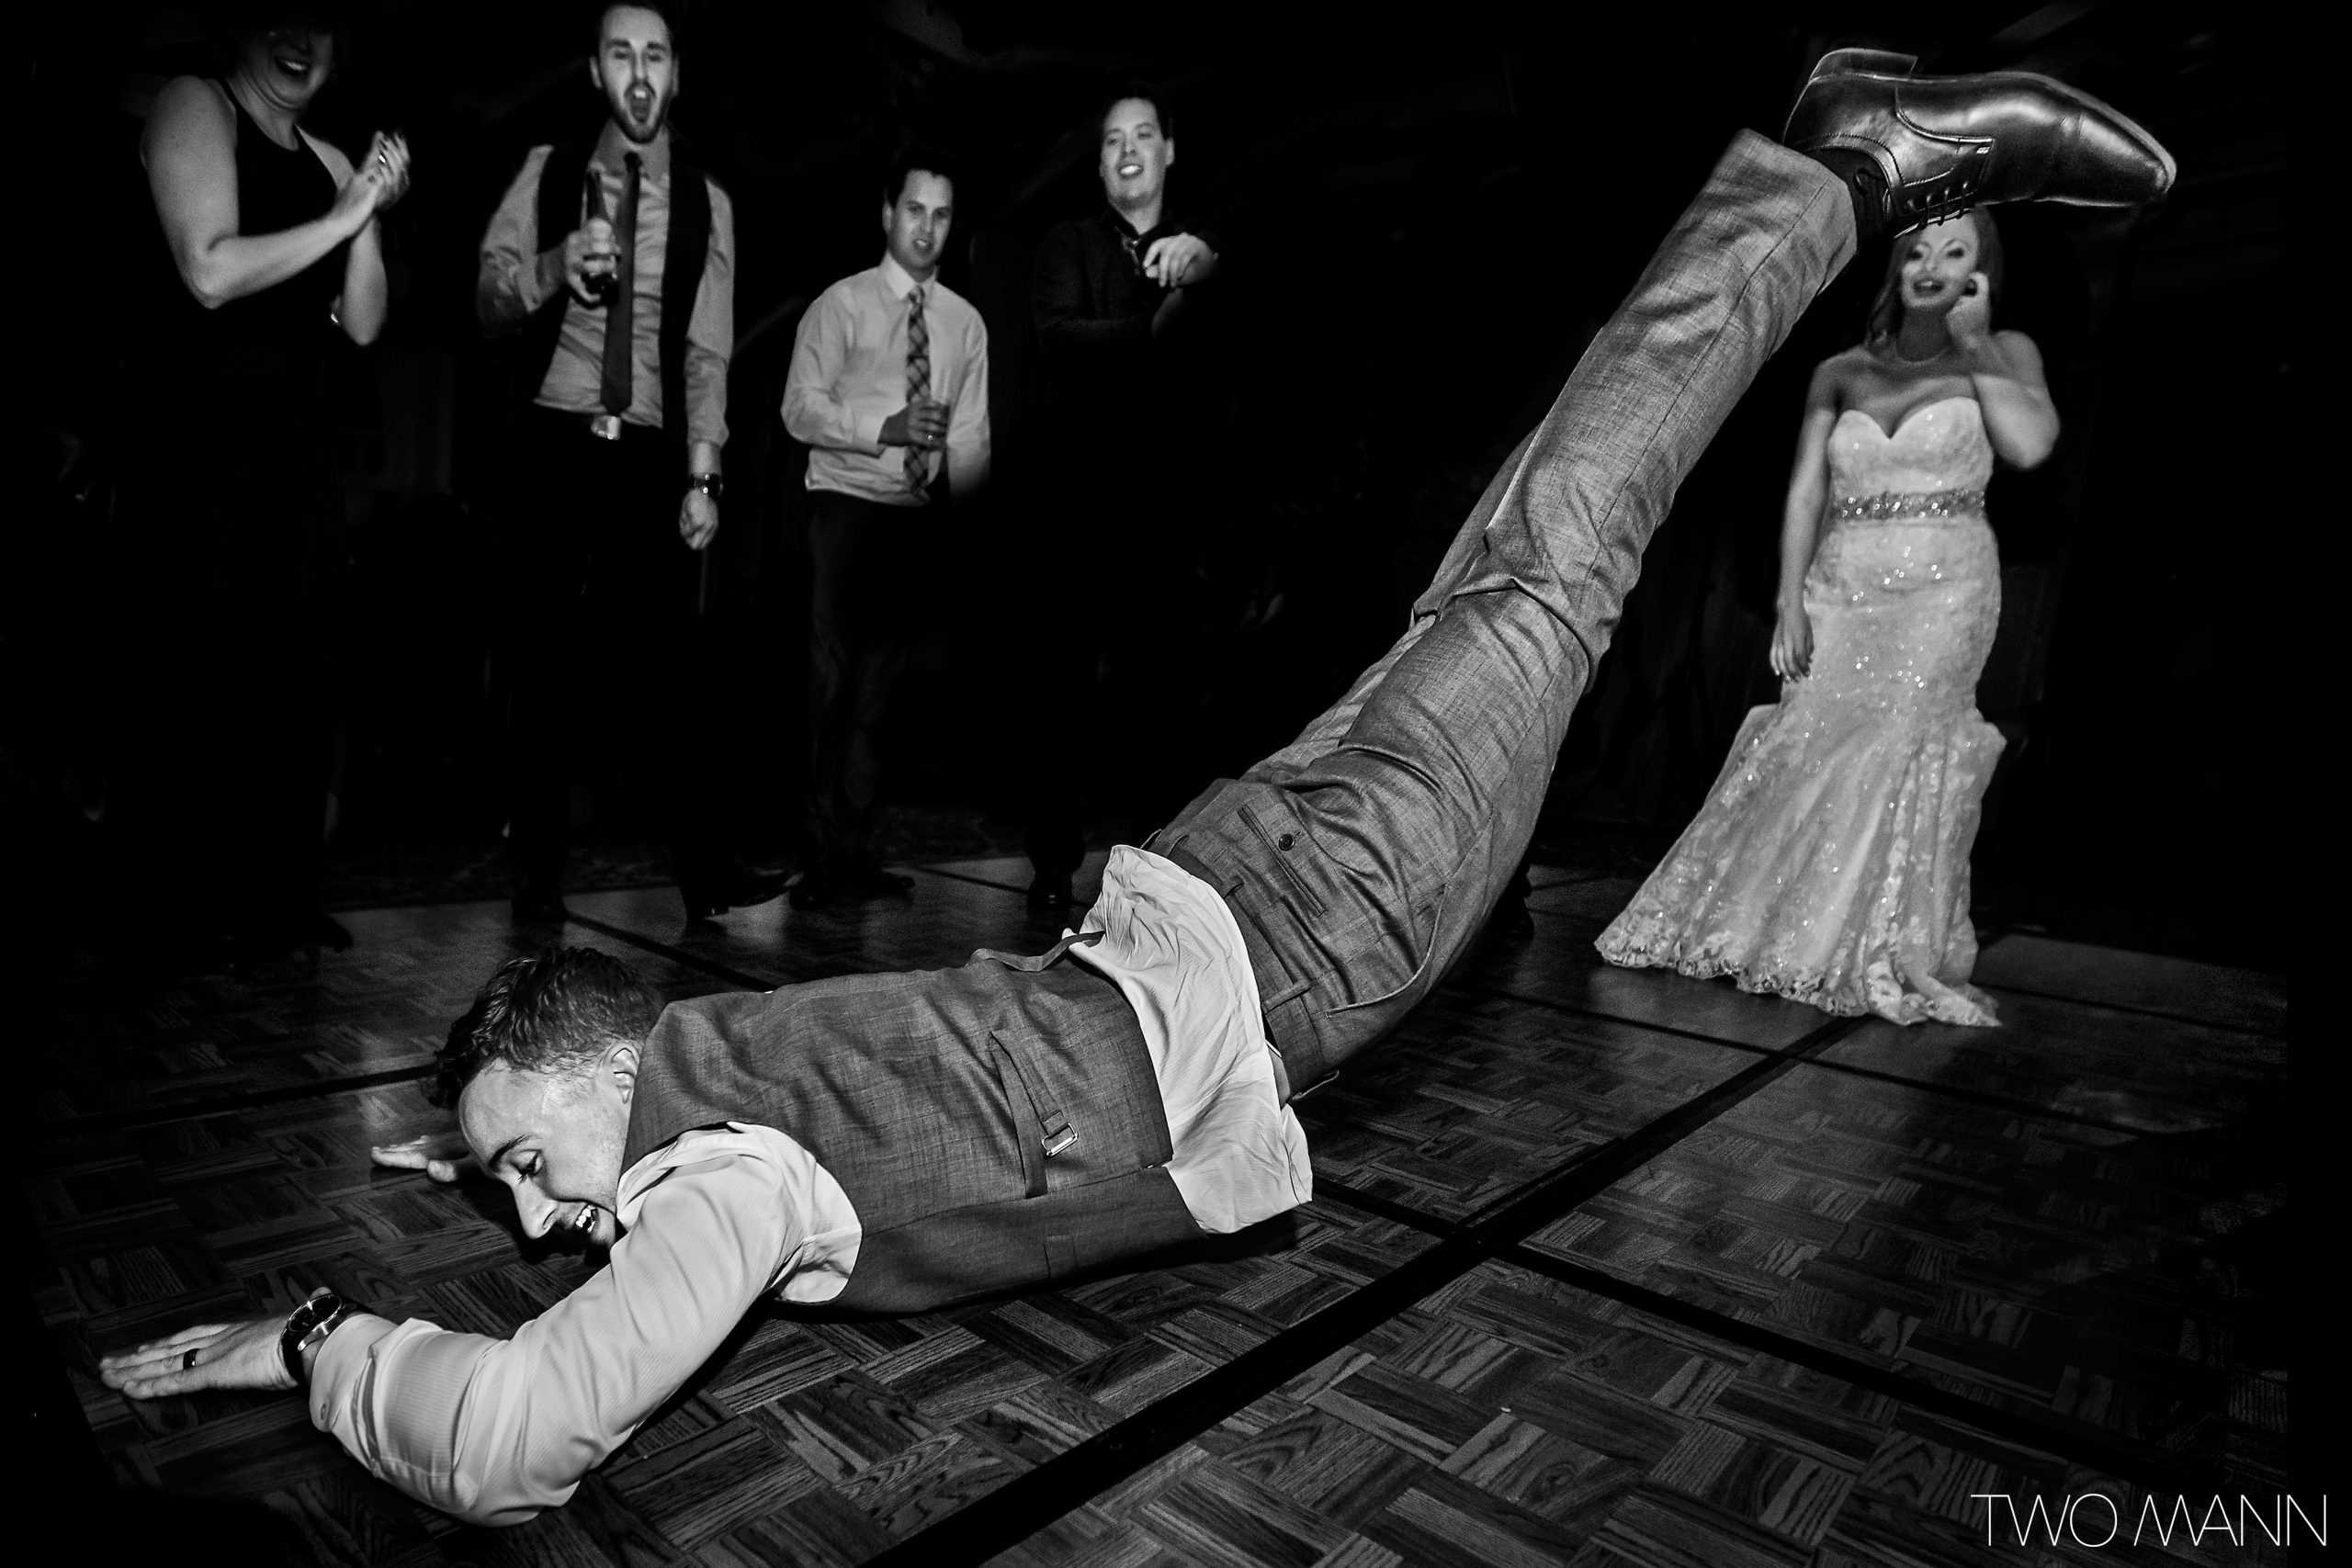 a groom hitting himself on the dance floor